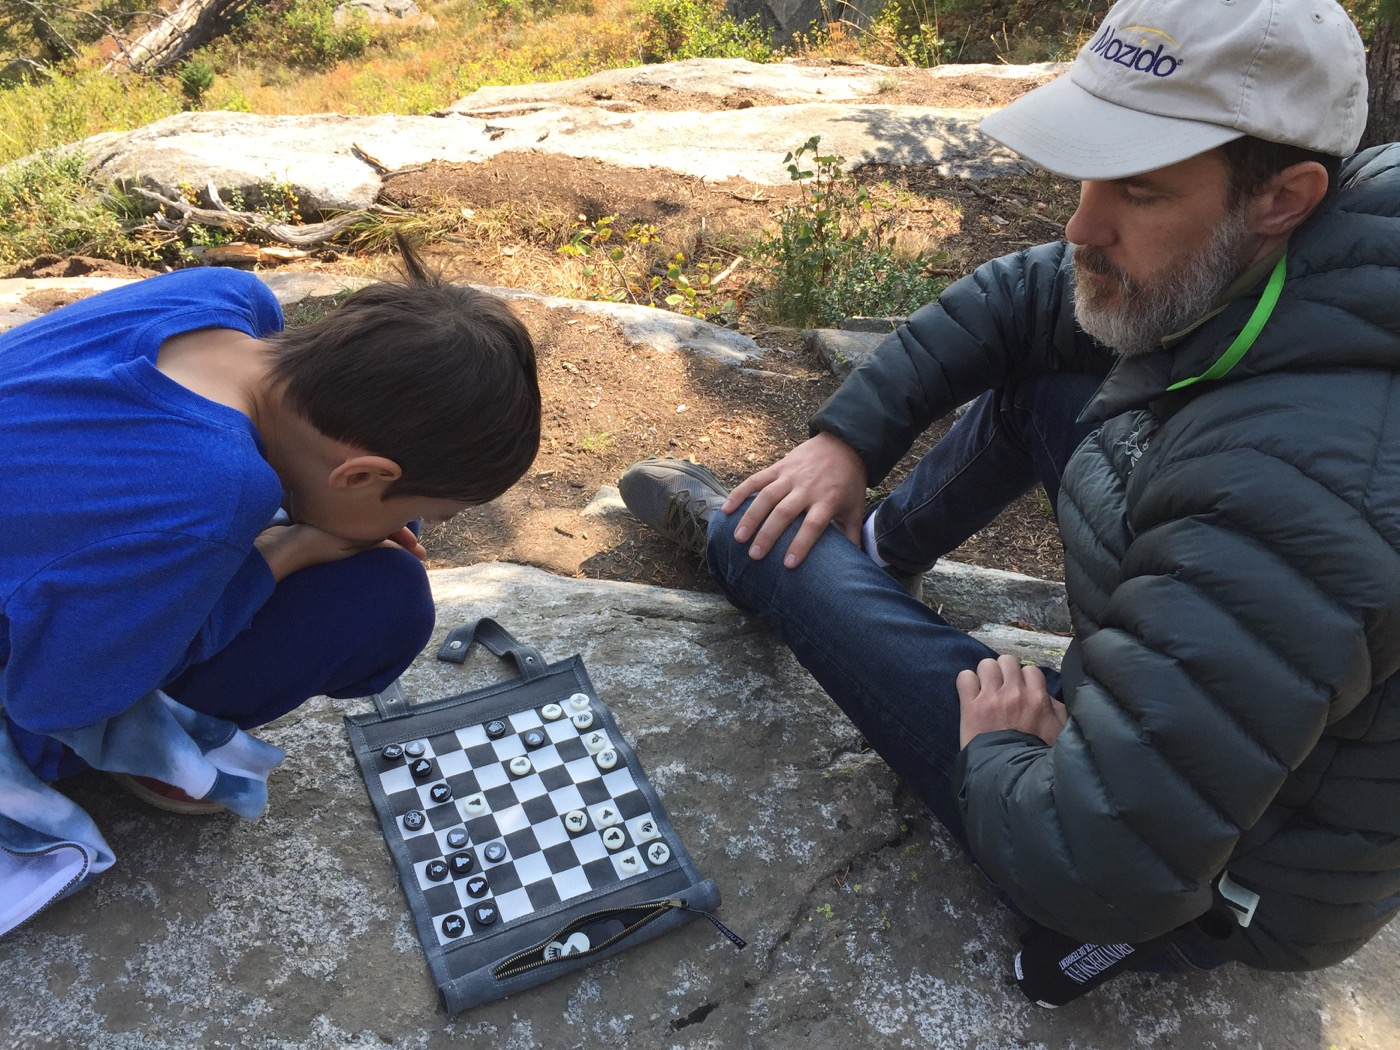 Kai and Ben playing chess, Tetons, Wyoming